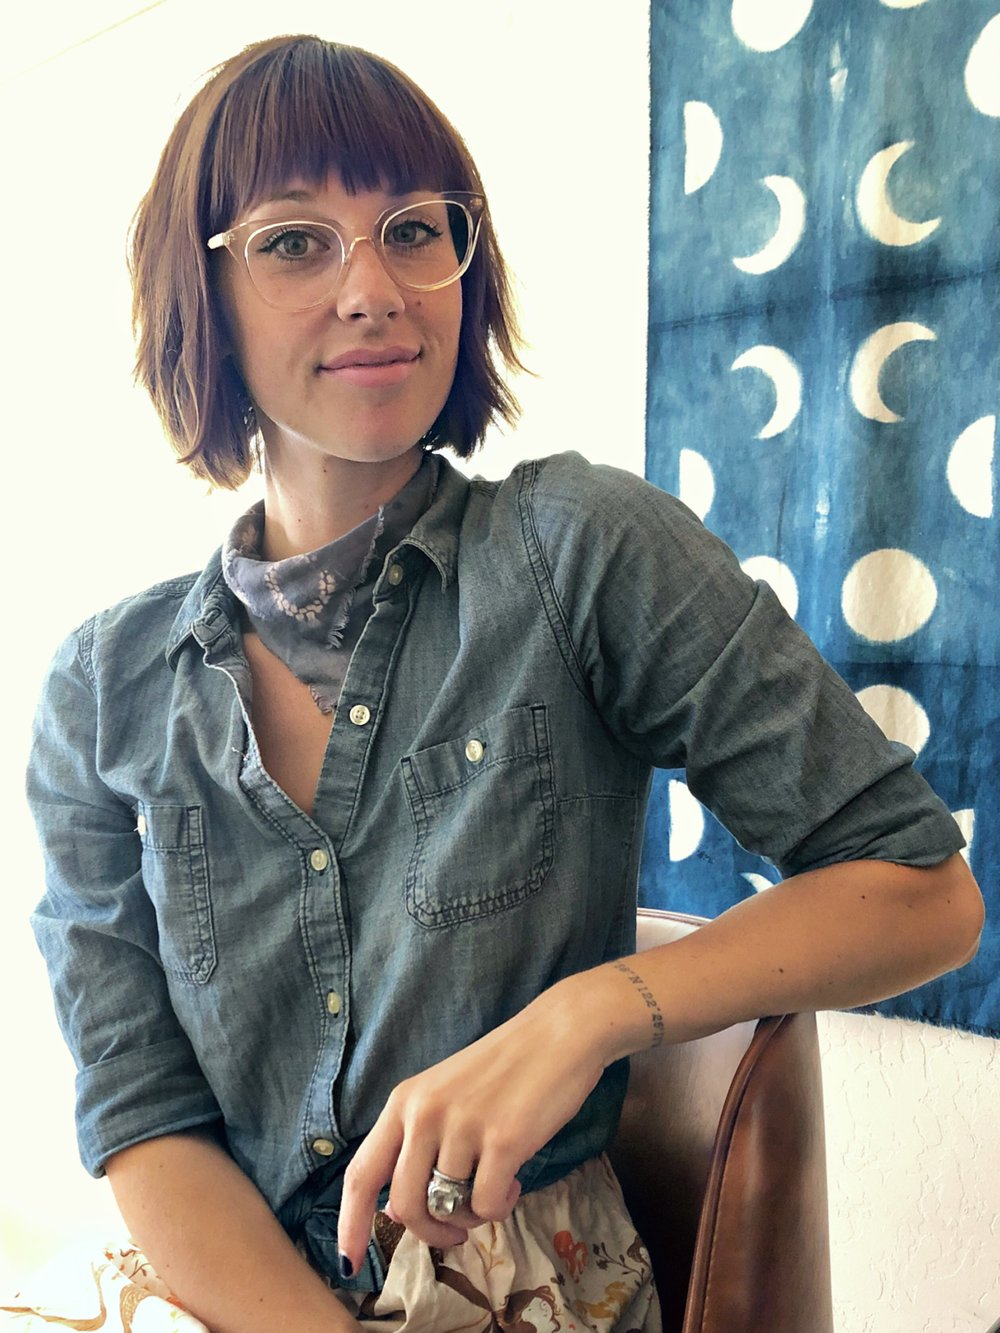 Kaitlin Bonifacio - Kaitlin studied the ancient art of Shibori in both Hawaii and Japan before relocating to Santa Cruz, California. A mother of two and owner of the Yuzu & Rose line of Shibori home and family products, she enjoys the magical process of hand dyeing, the challenge of creating natural, plant-based dyes of her own, and the joy of sharing her products and techniques with the community.Etsy: www.etsy.com/shop/YuzuAndRoseIG: @yuzuandrose